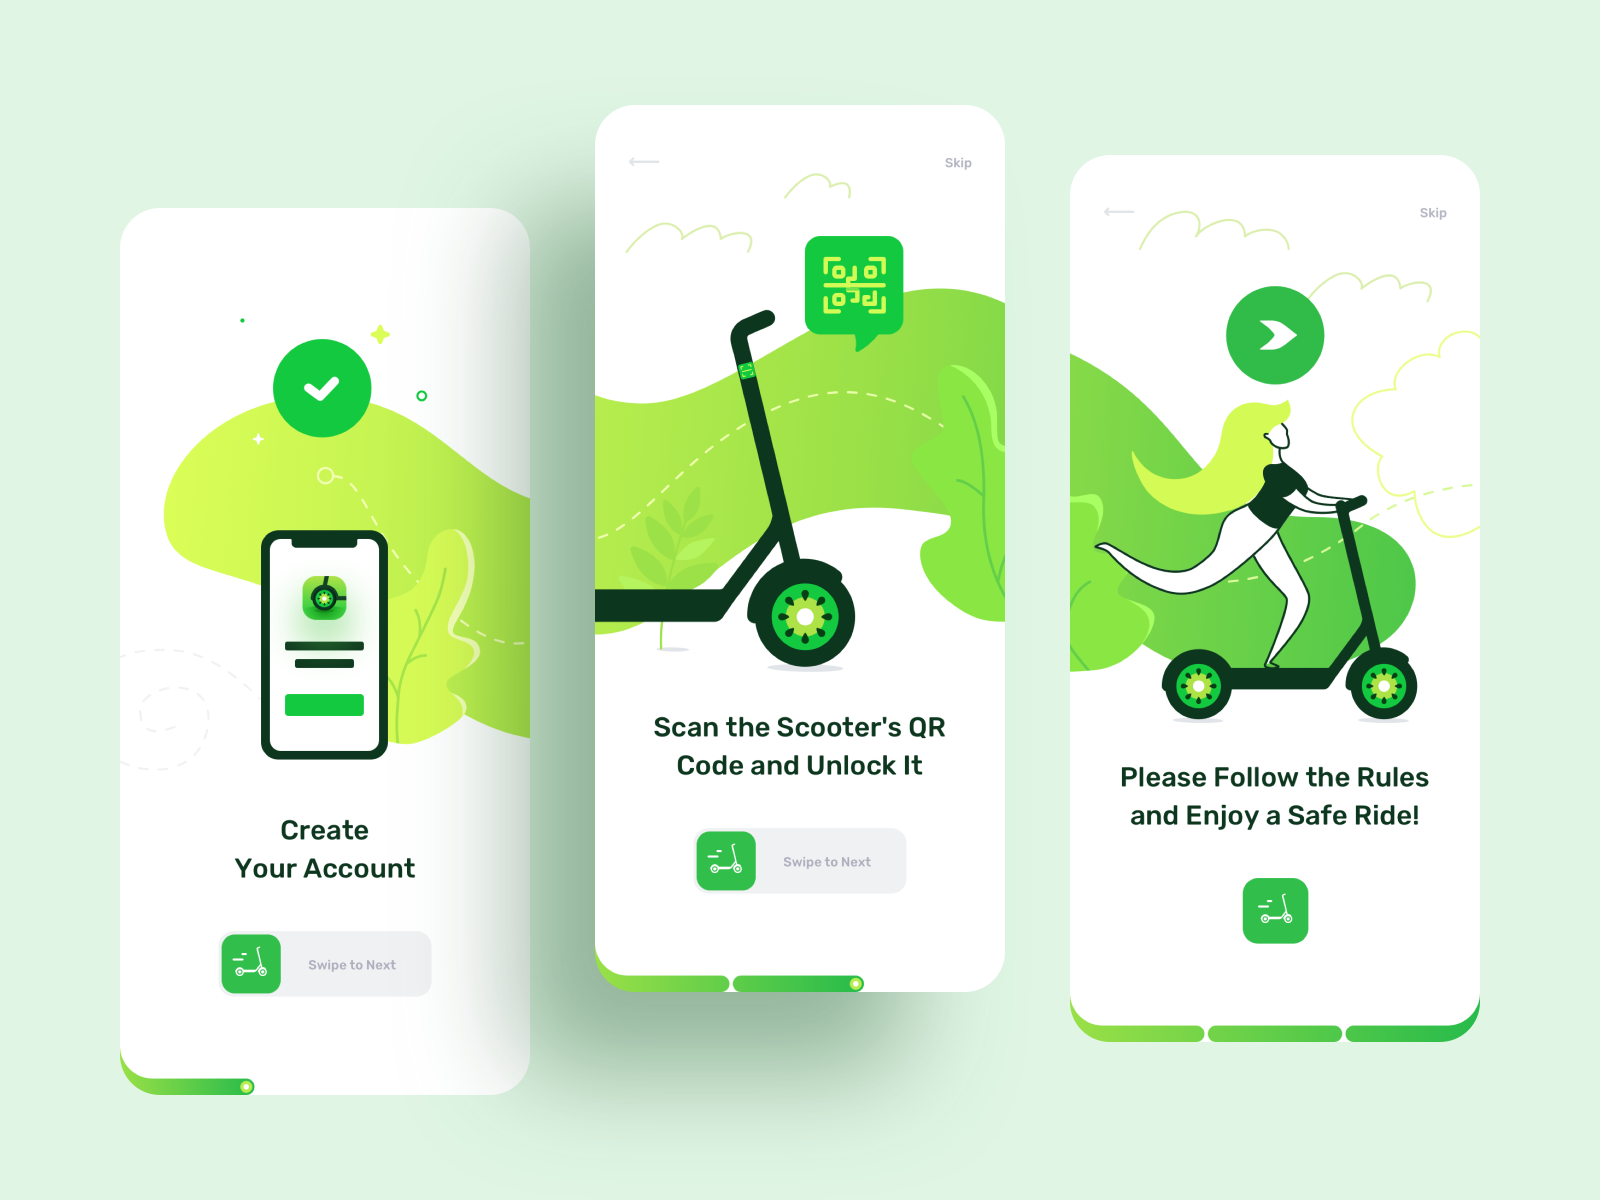 Kiwi | IOS App Design for Rent Scooters sketch scooter route rider ride rent navigation map journey explore distance ios illustrator illustrations icons design clean bike mobile app adobe photoshop